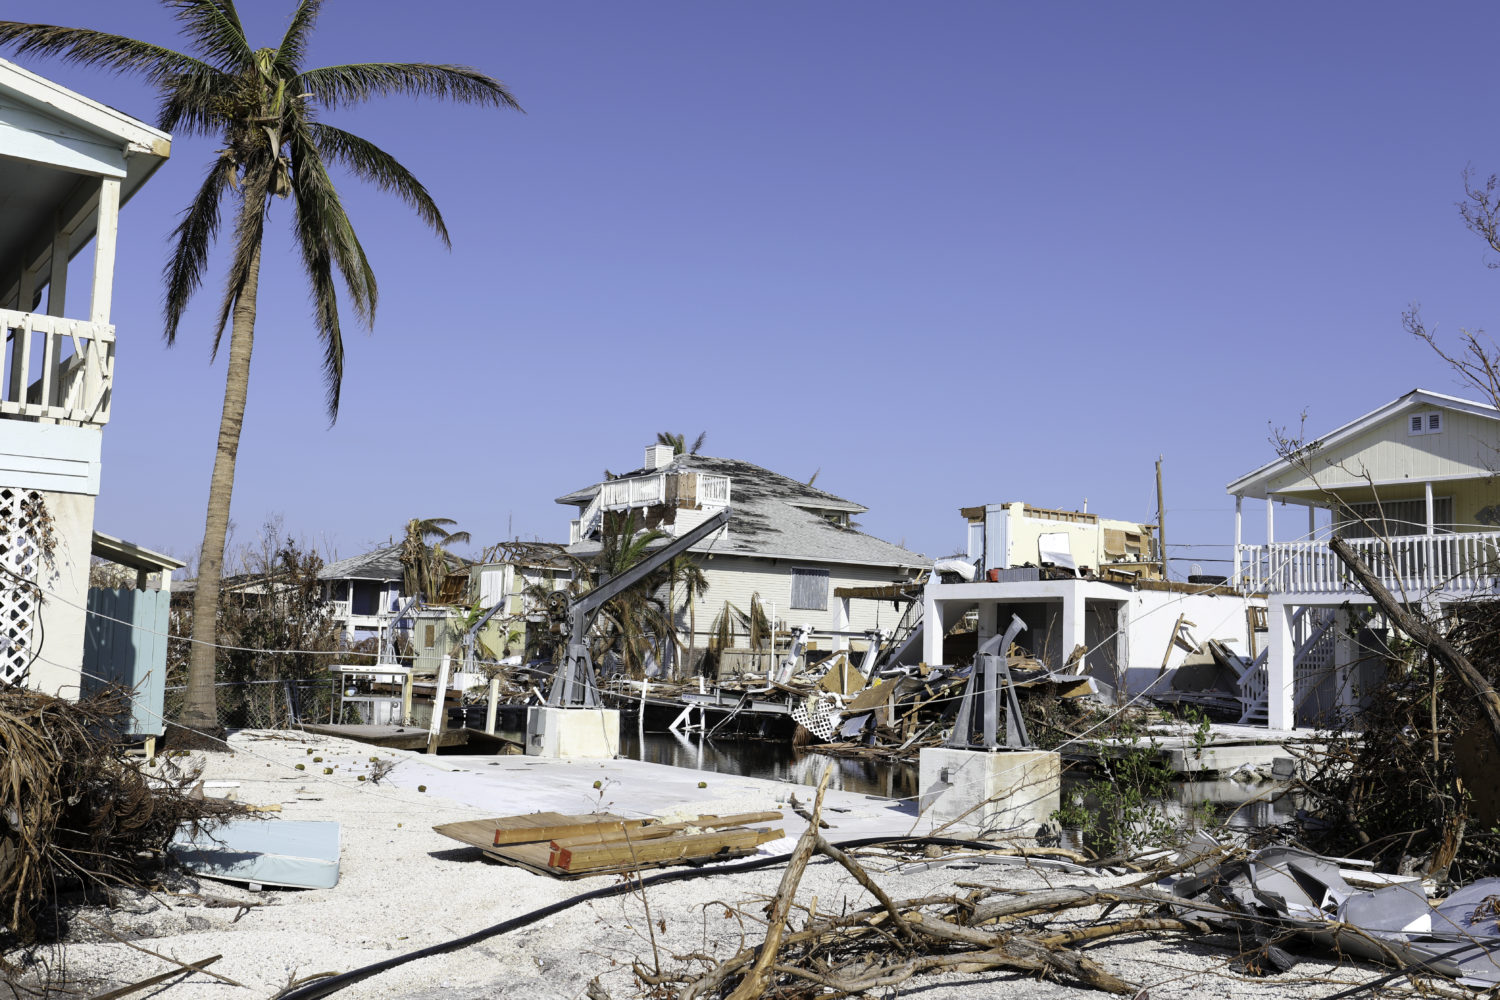 homes heavily damaged by a hurricane